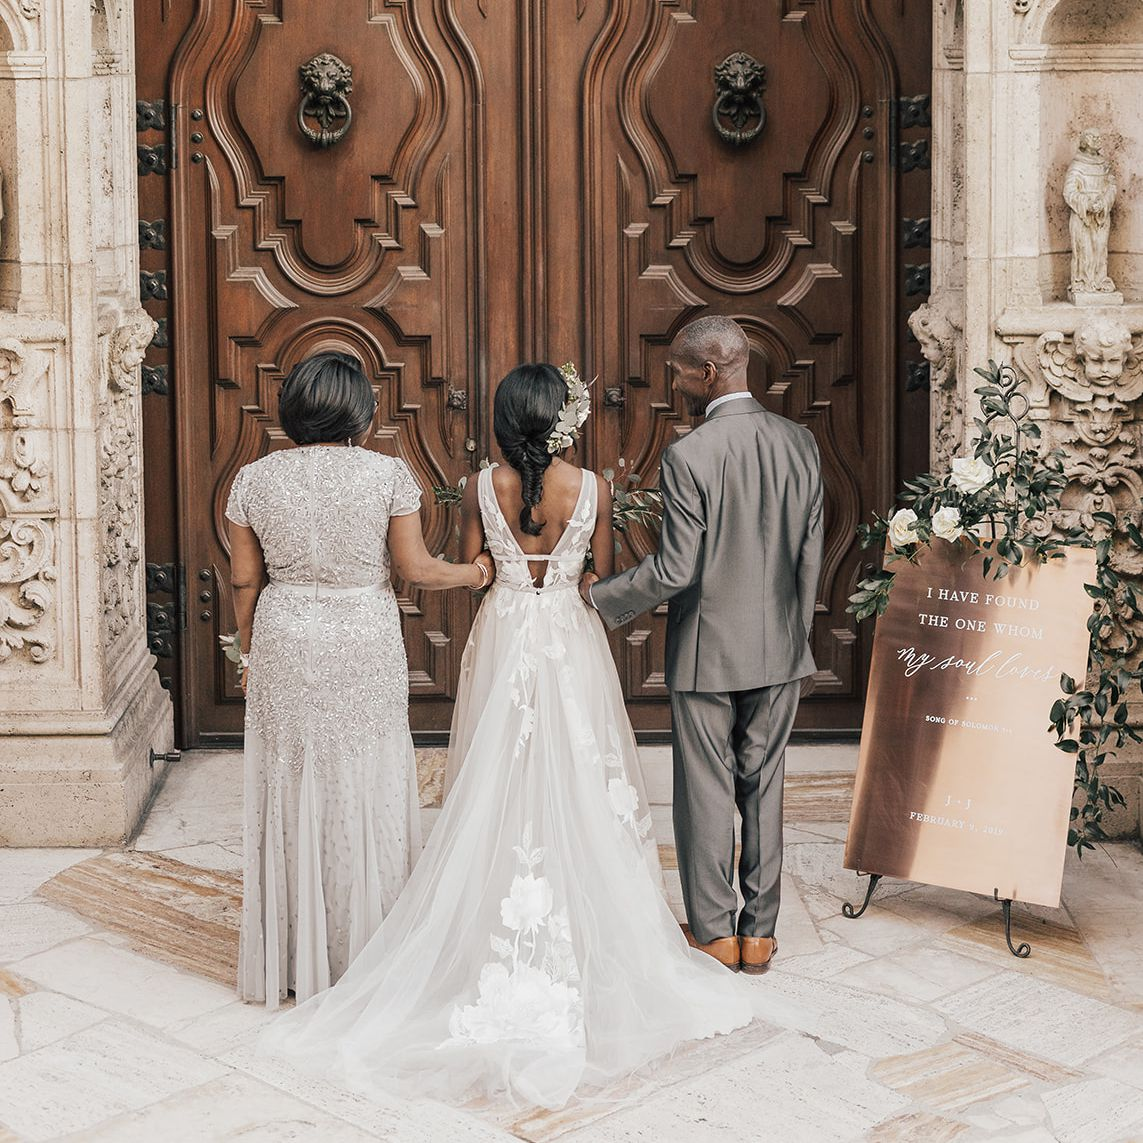 65 Emotional Father Of The Bride Wedding Photos That Ll Have You Reaching For The Tissues